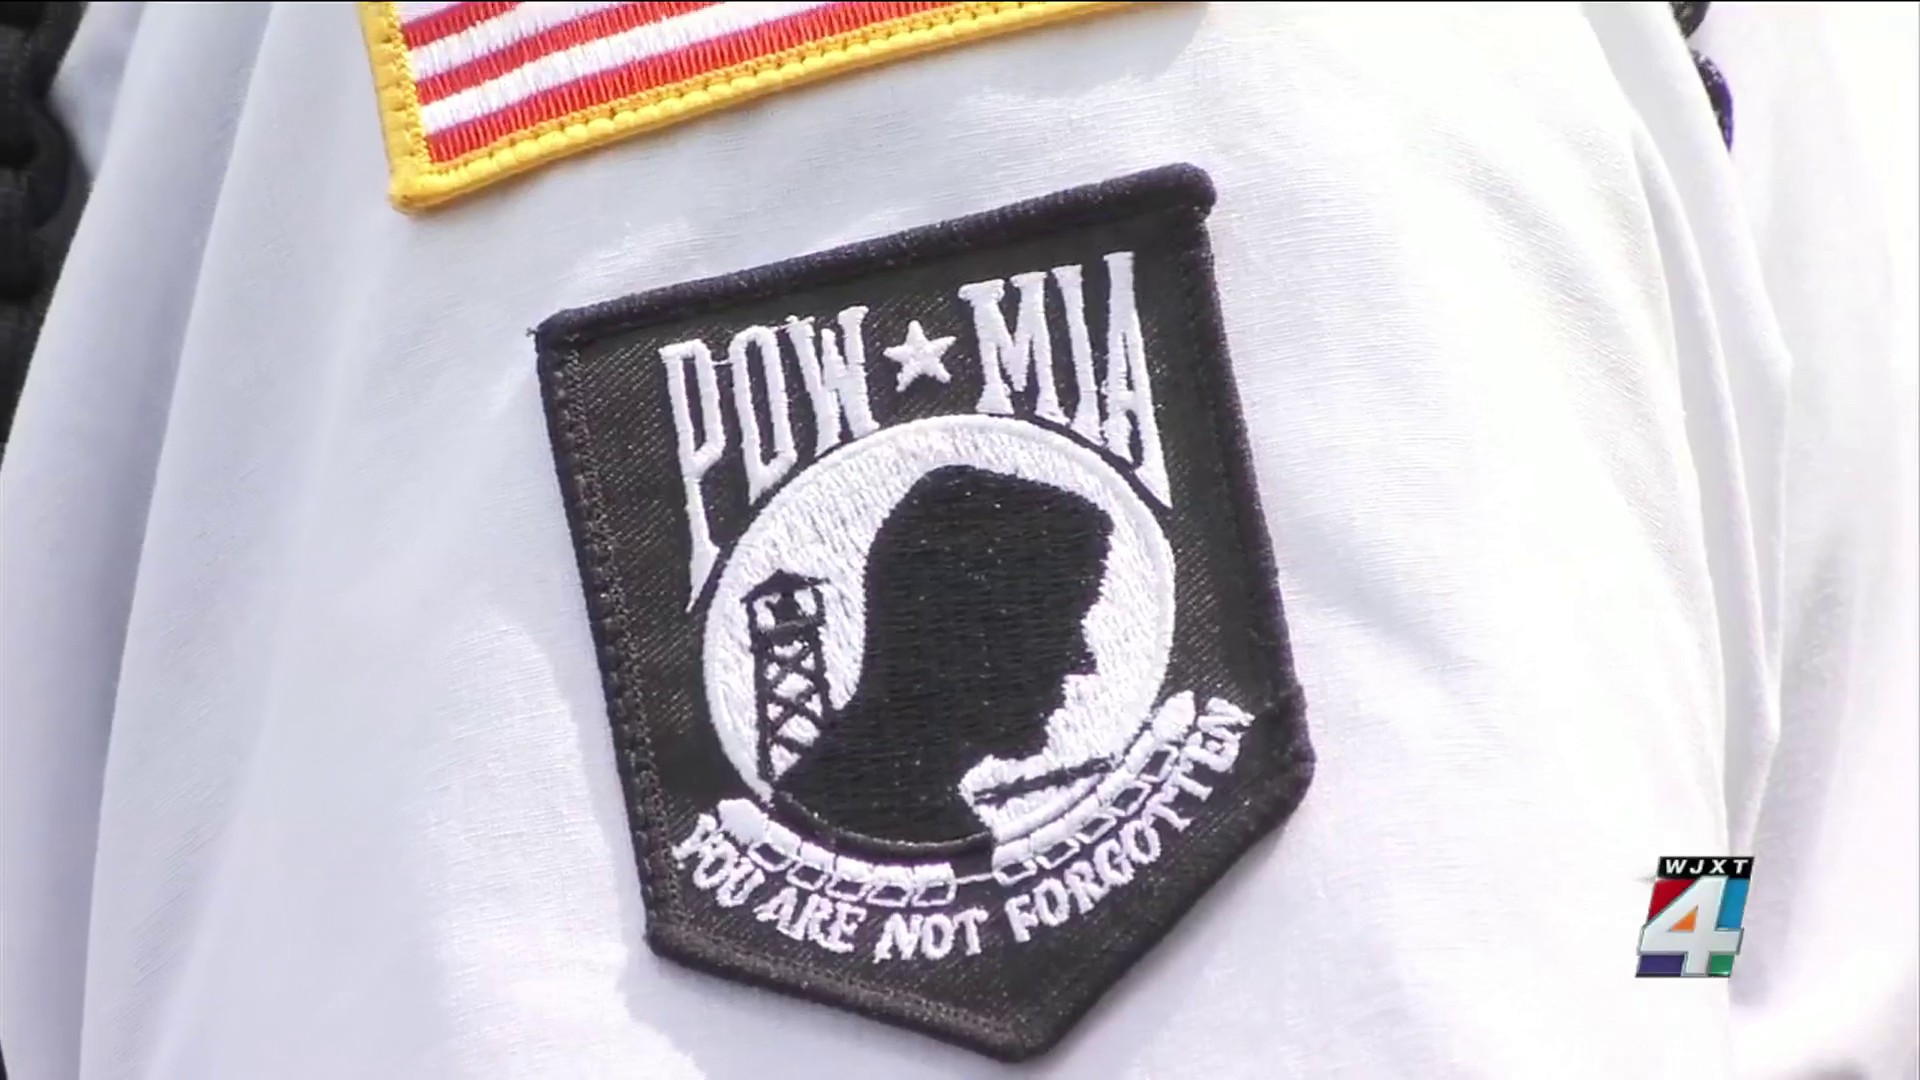 Loved ones honor POW-MIAs in emotional ceremony at Cecil Field